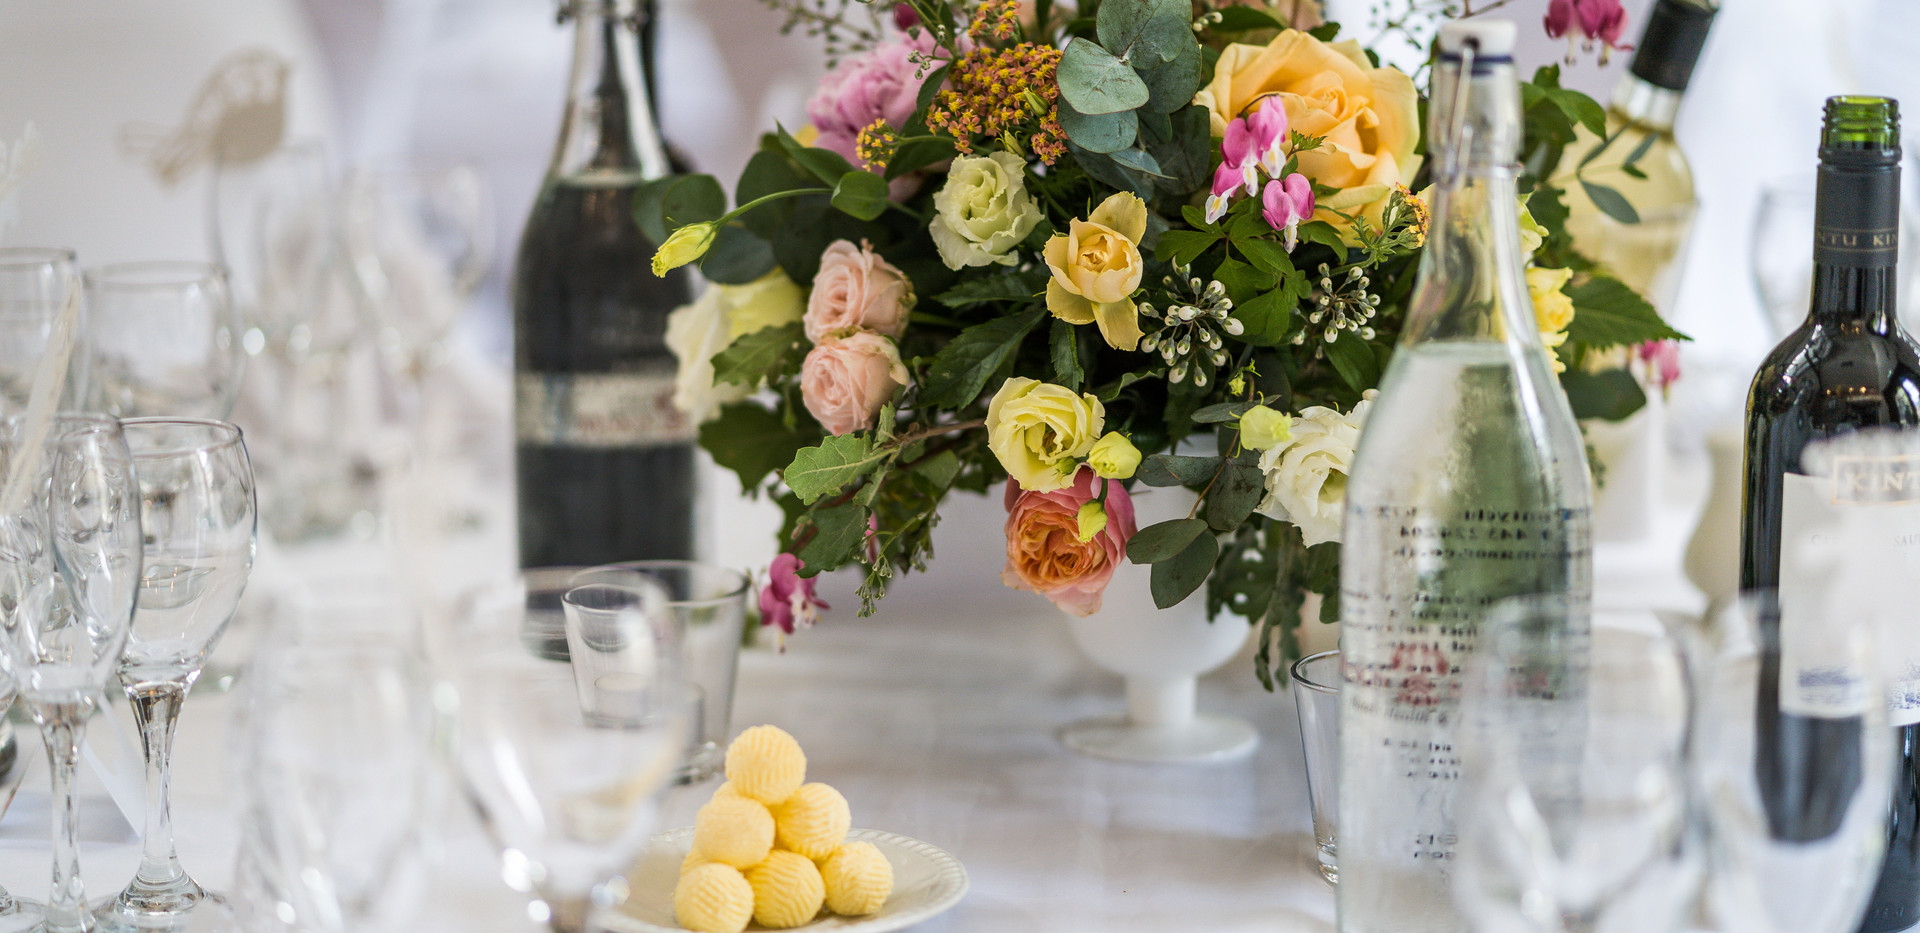 Summer table centrepieces